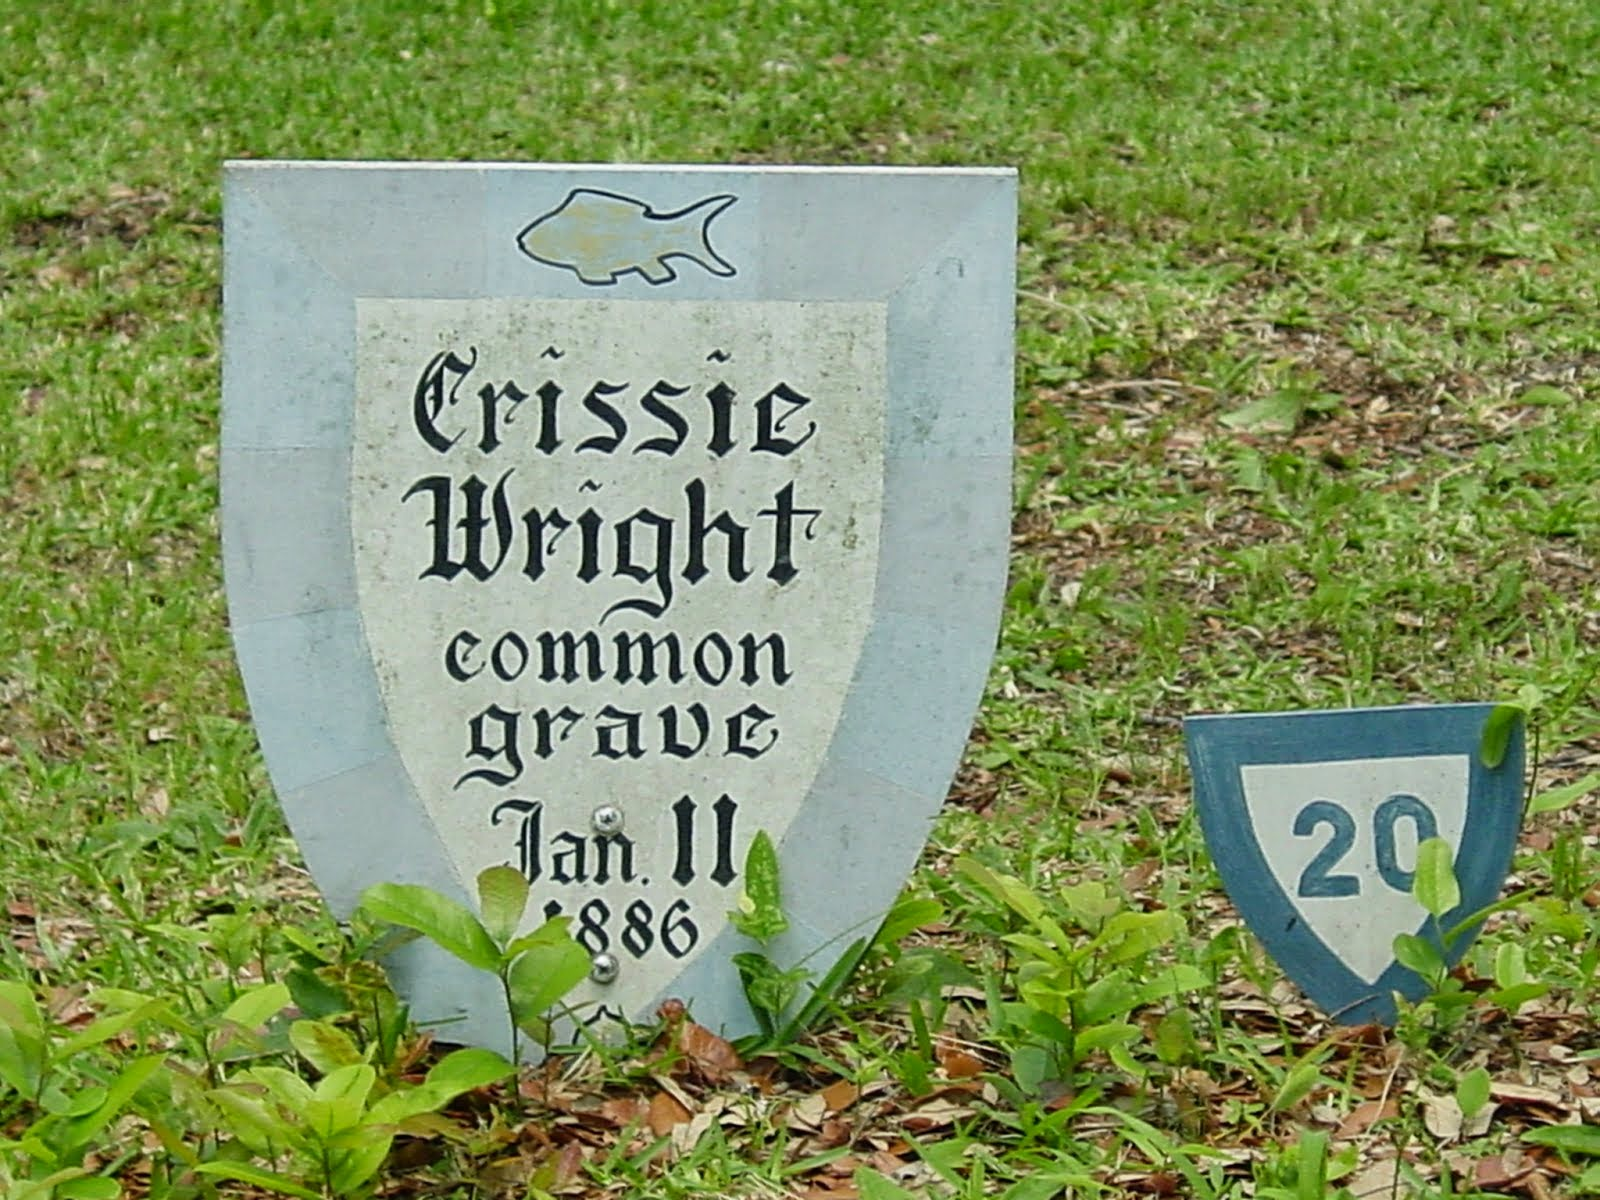 The Crissie Wright Common Grave